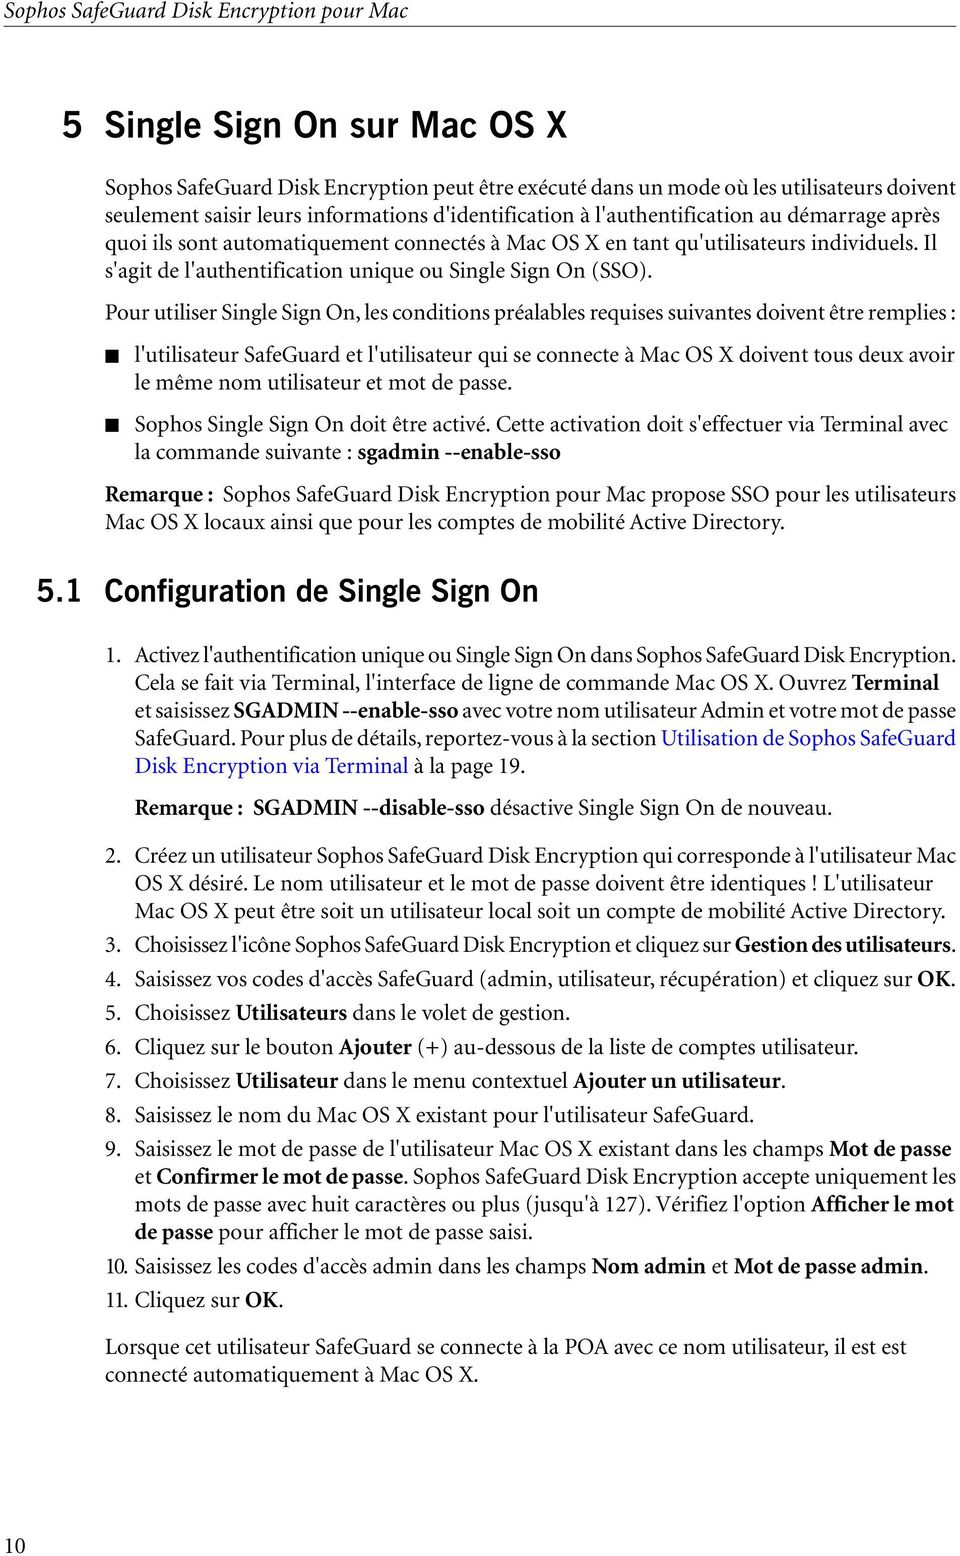 Il s'agit de l'authentification unique ou Single Sign On (SSO).